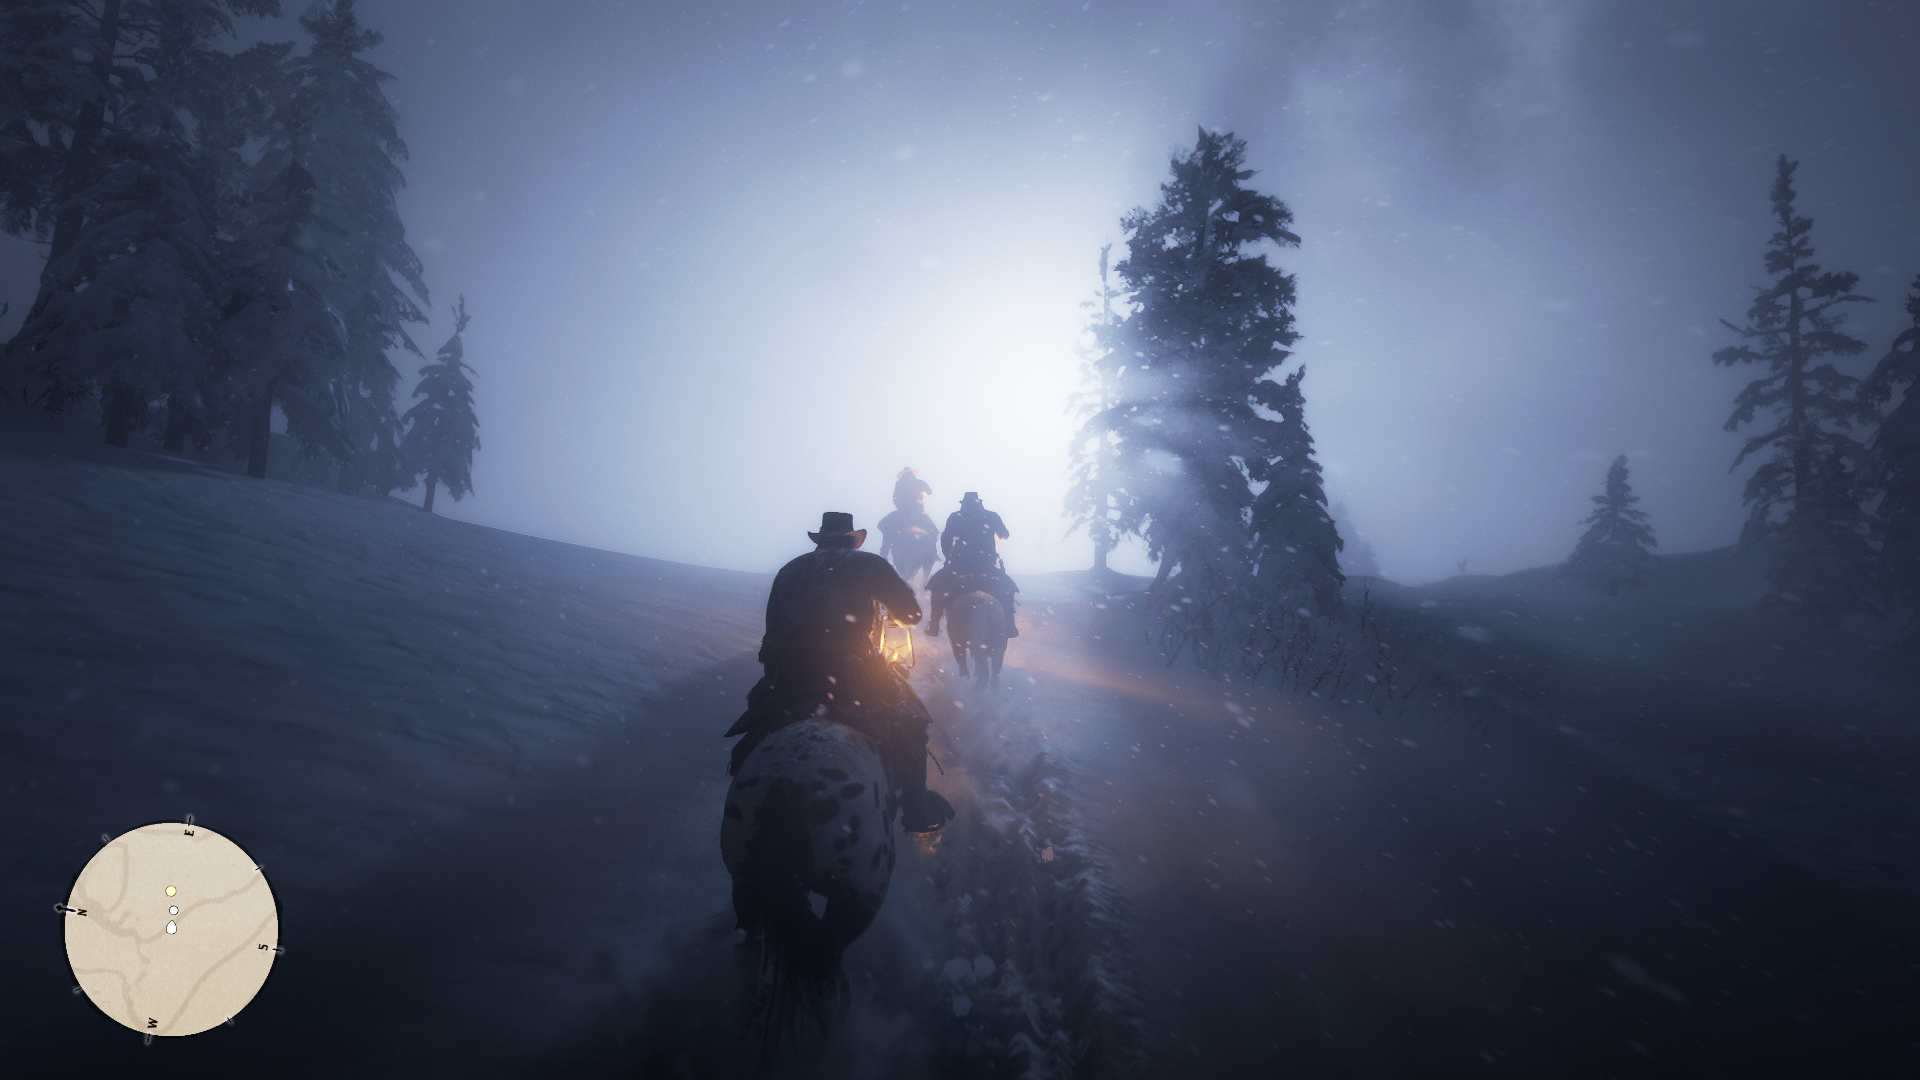 Red Dead Redemption 2 Is Having A Rough Launch On PC